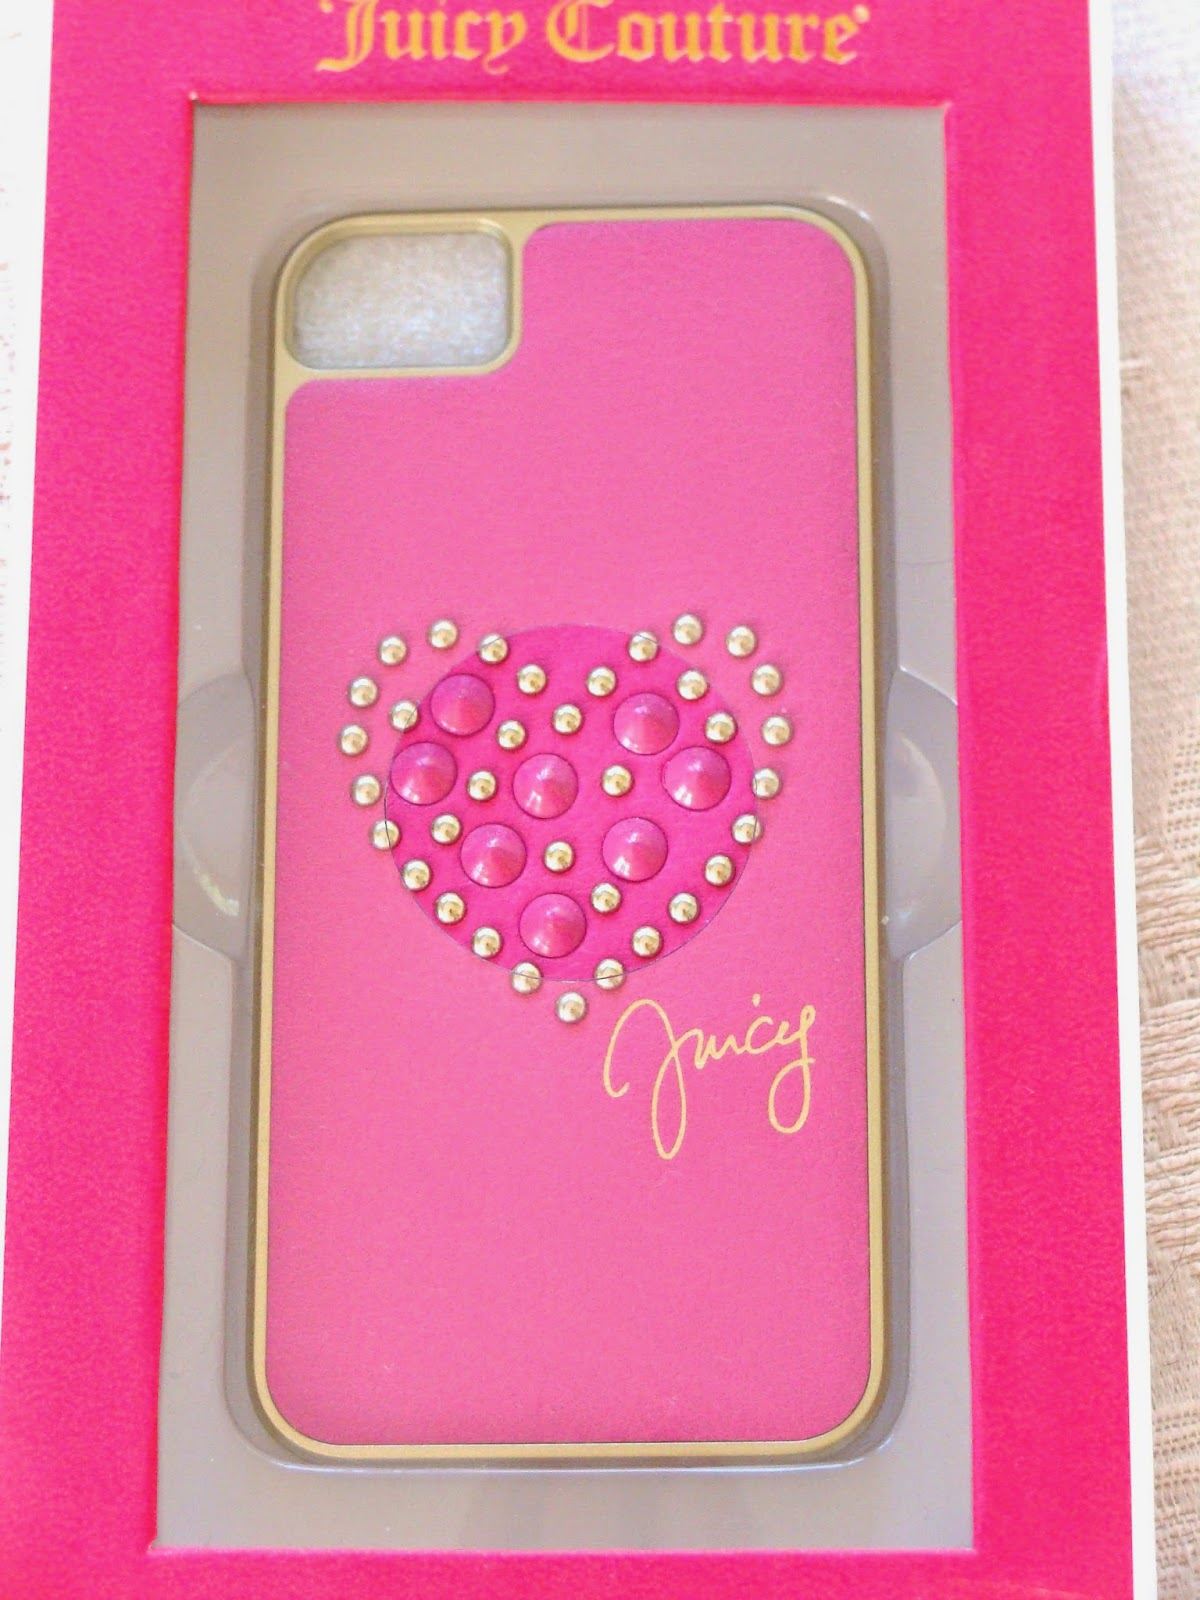 http://www.sunnybeachcouture.com/servlet/the-Juicy-Couture-cln-Jucy-Couture-Tech-Accessory/Categories